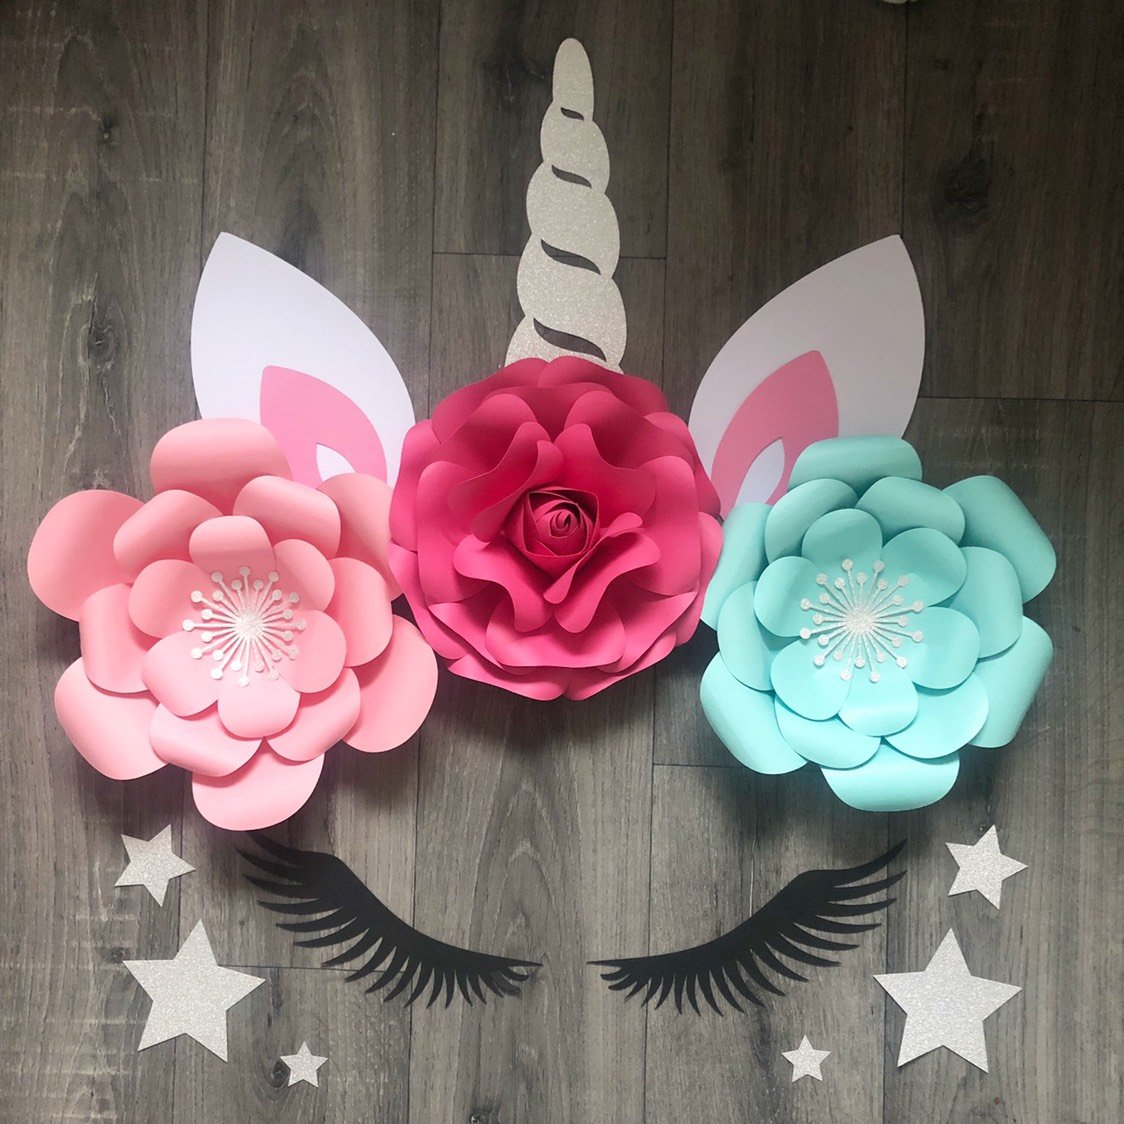 Unicorn Wall Decor with Rose